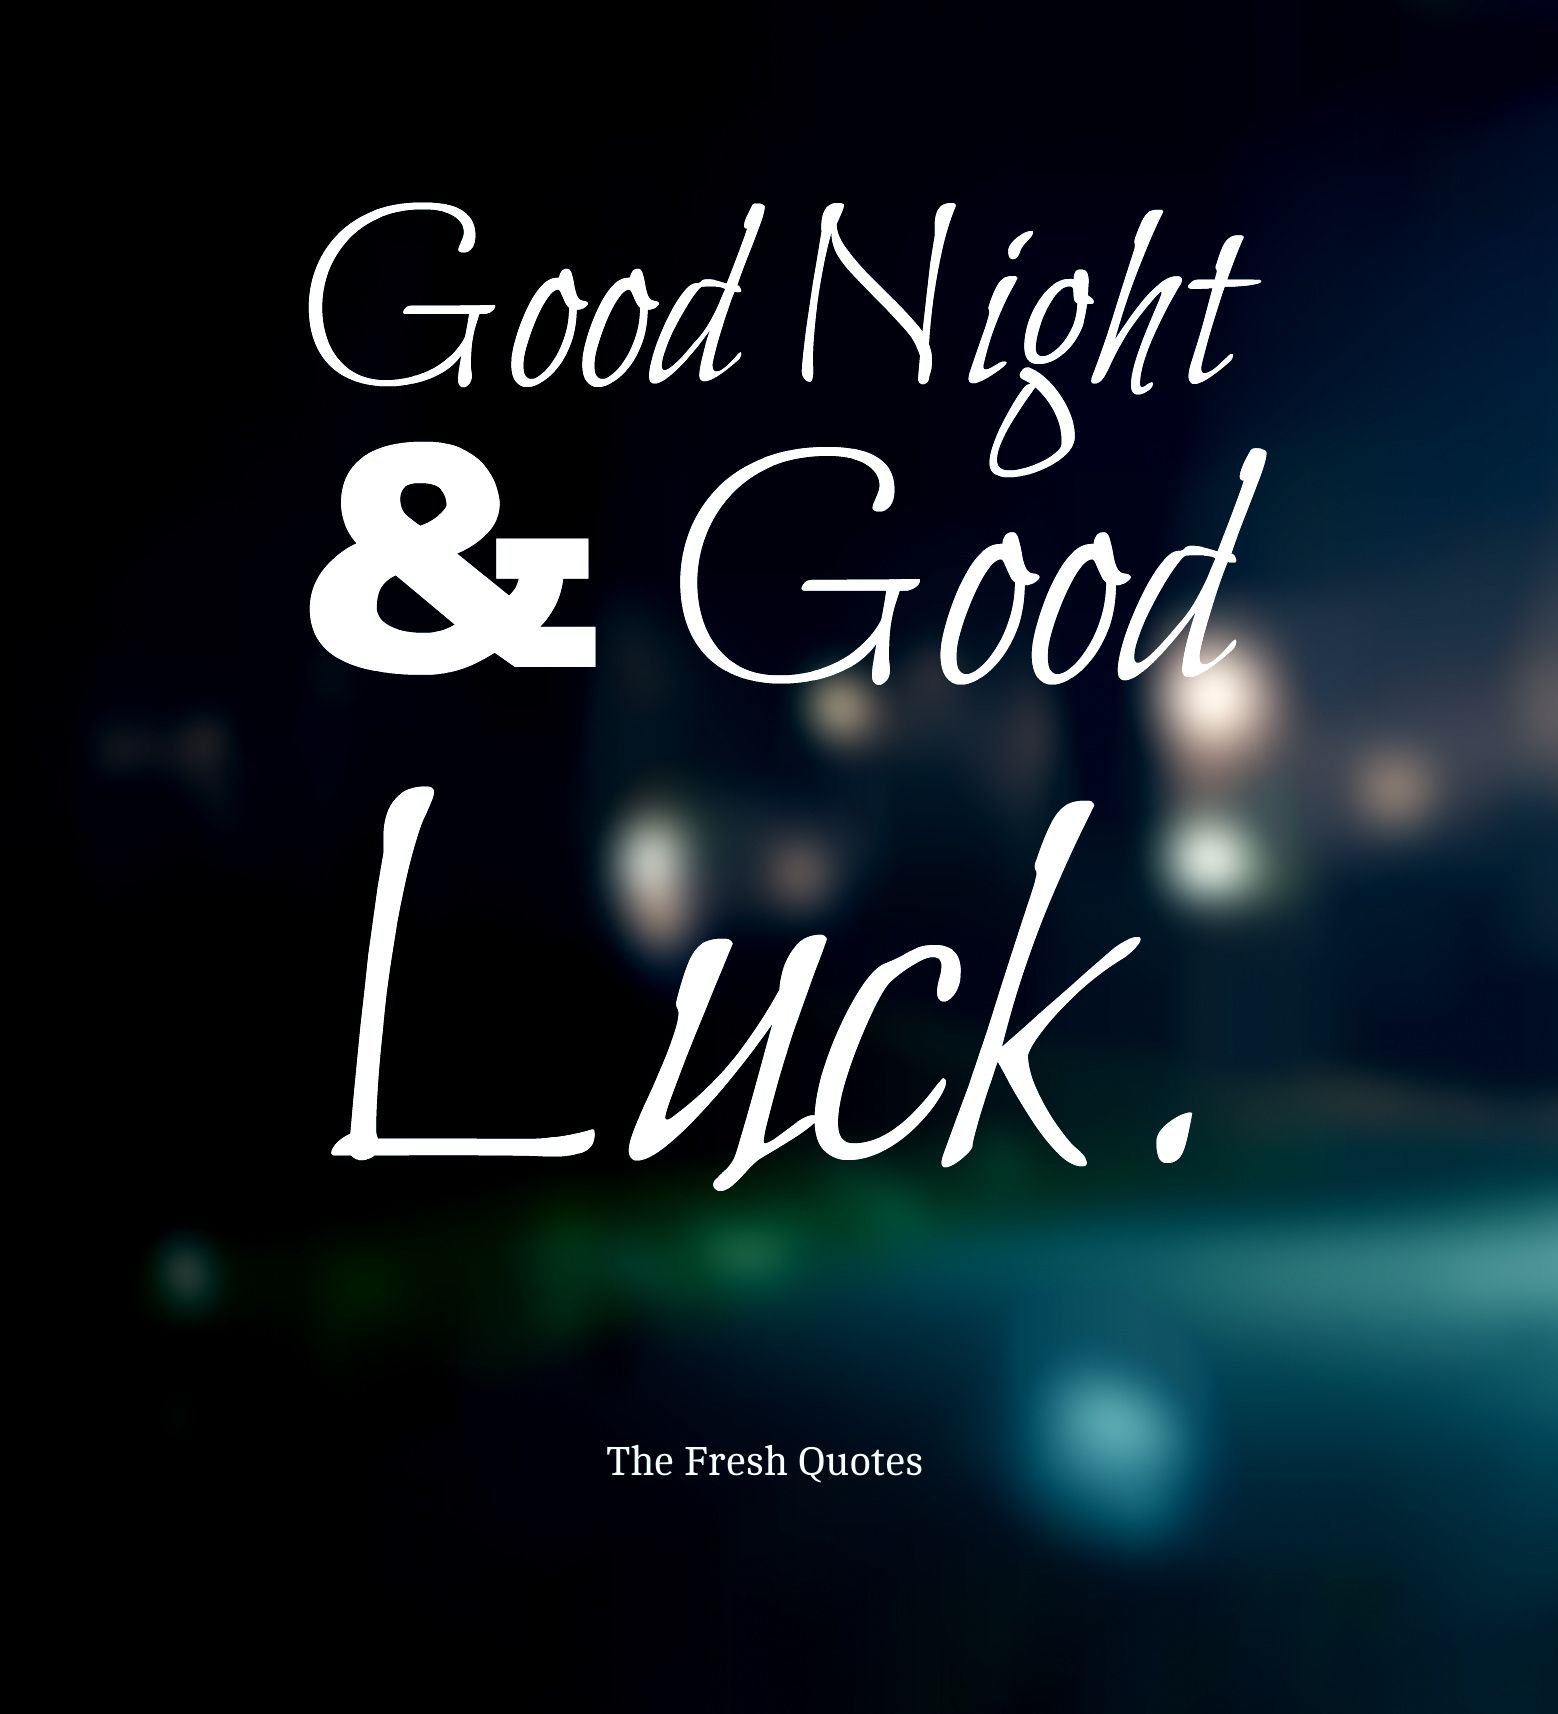 Good Night Quotes For Family and Friends